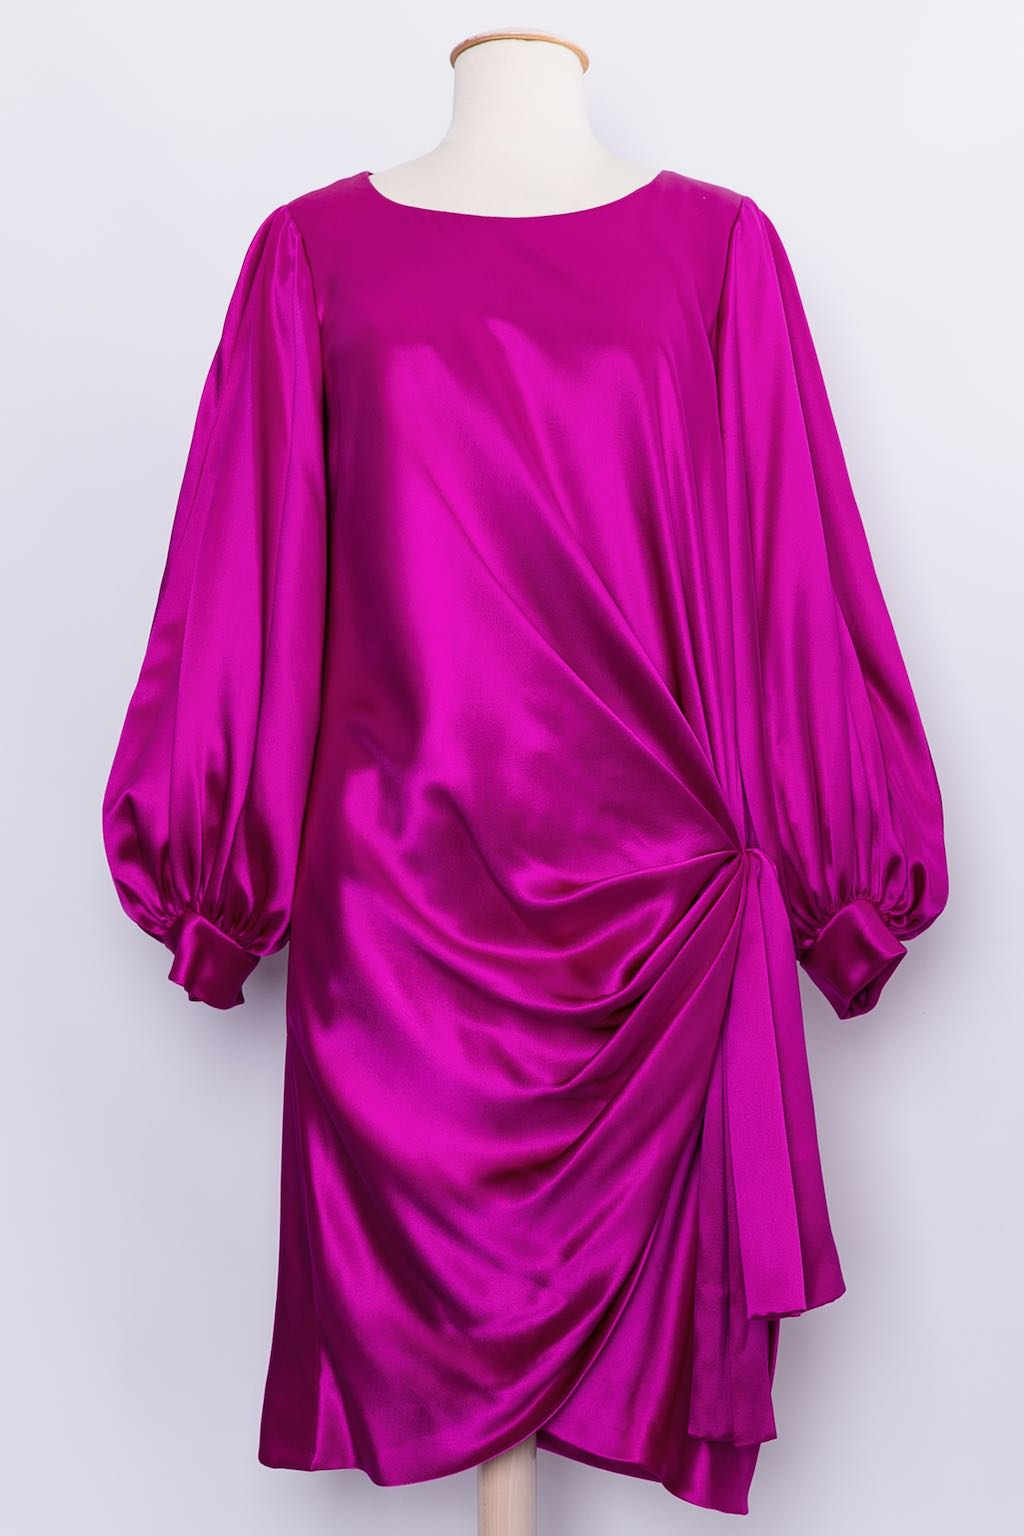 Yves Saint Laurent Haute Couture silk dress